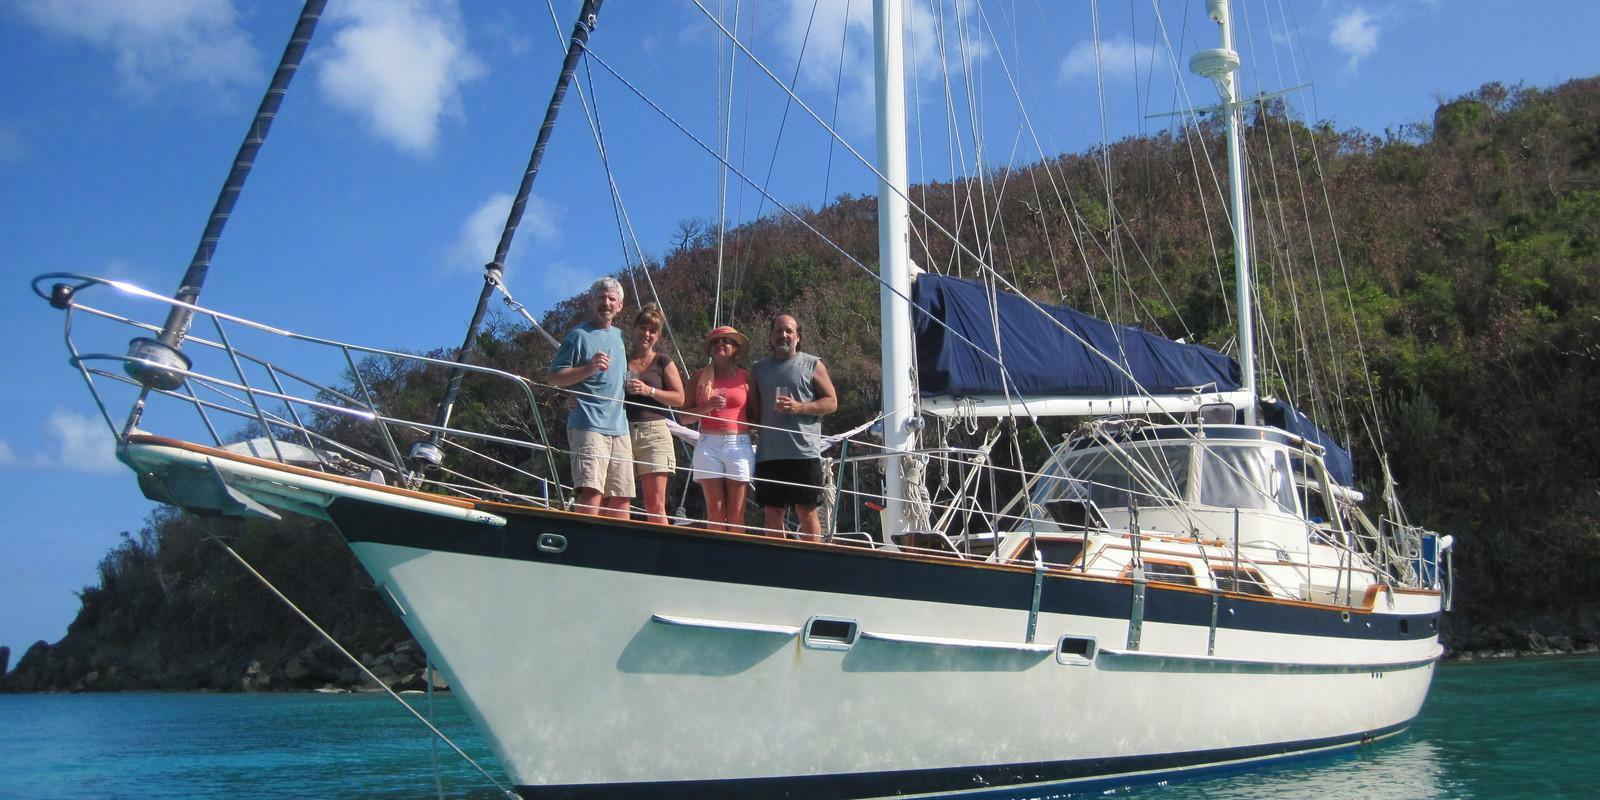 Sailing from Martinique to Guadeloupe - dates and duration are flexible